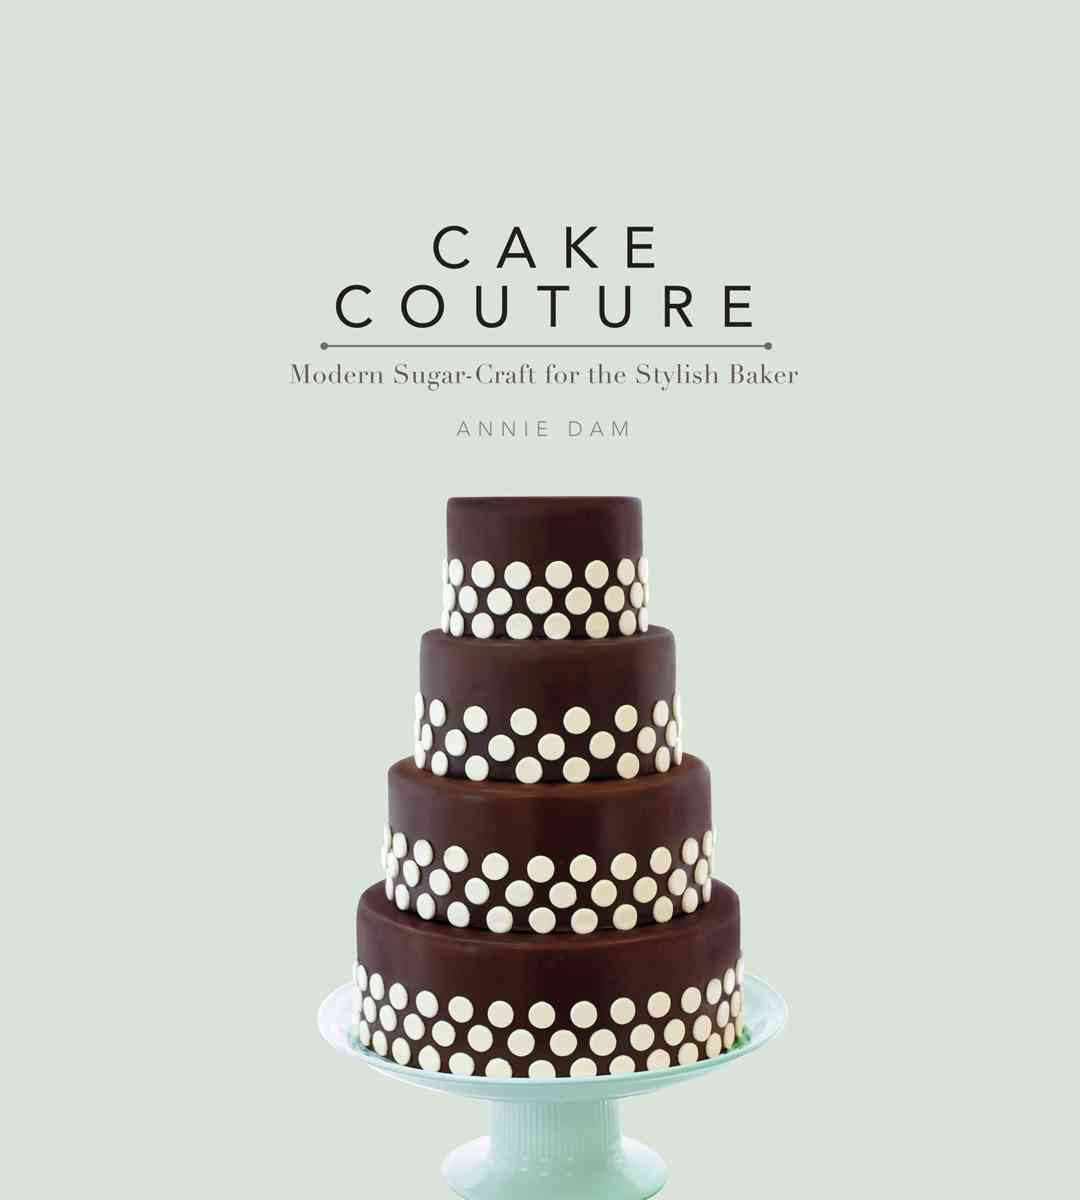 Cake Couture: Modern Sugar-Craft for the Stylish Baker (Paperback)